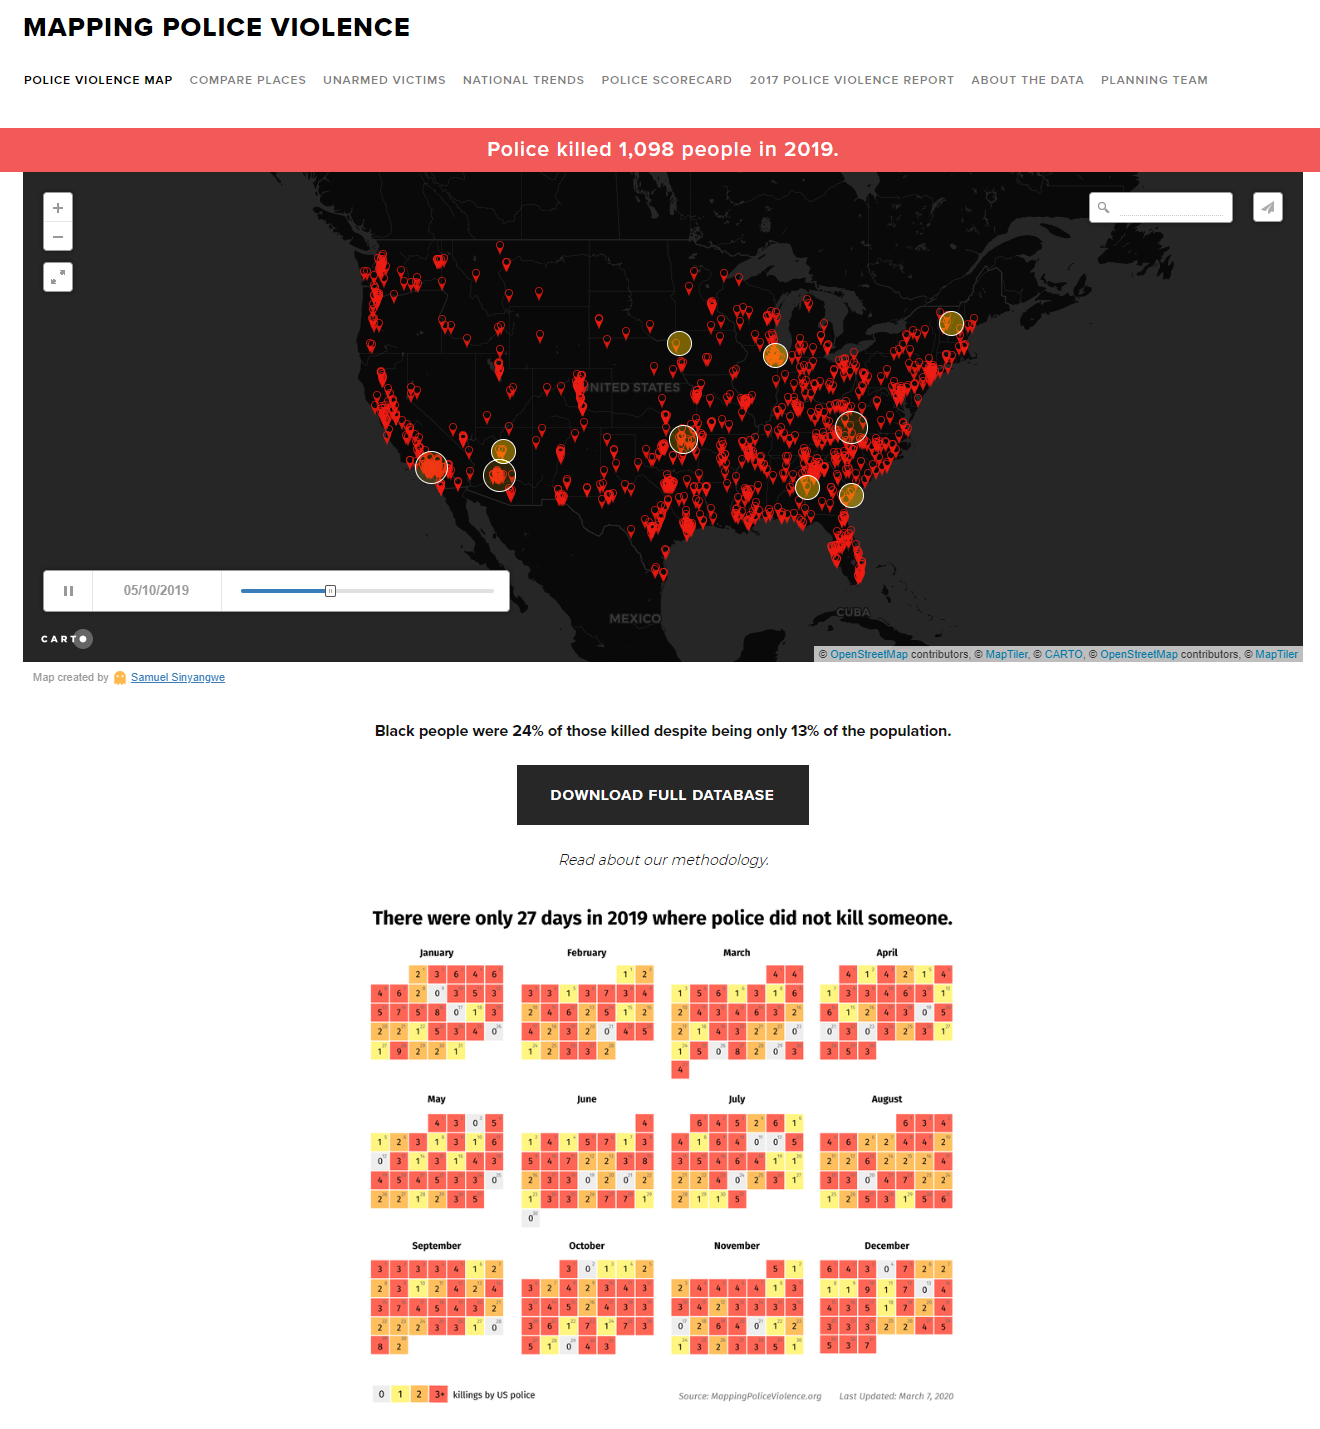 Mapping Police Violence